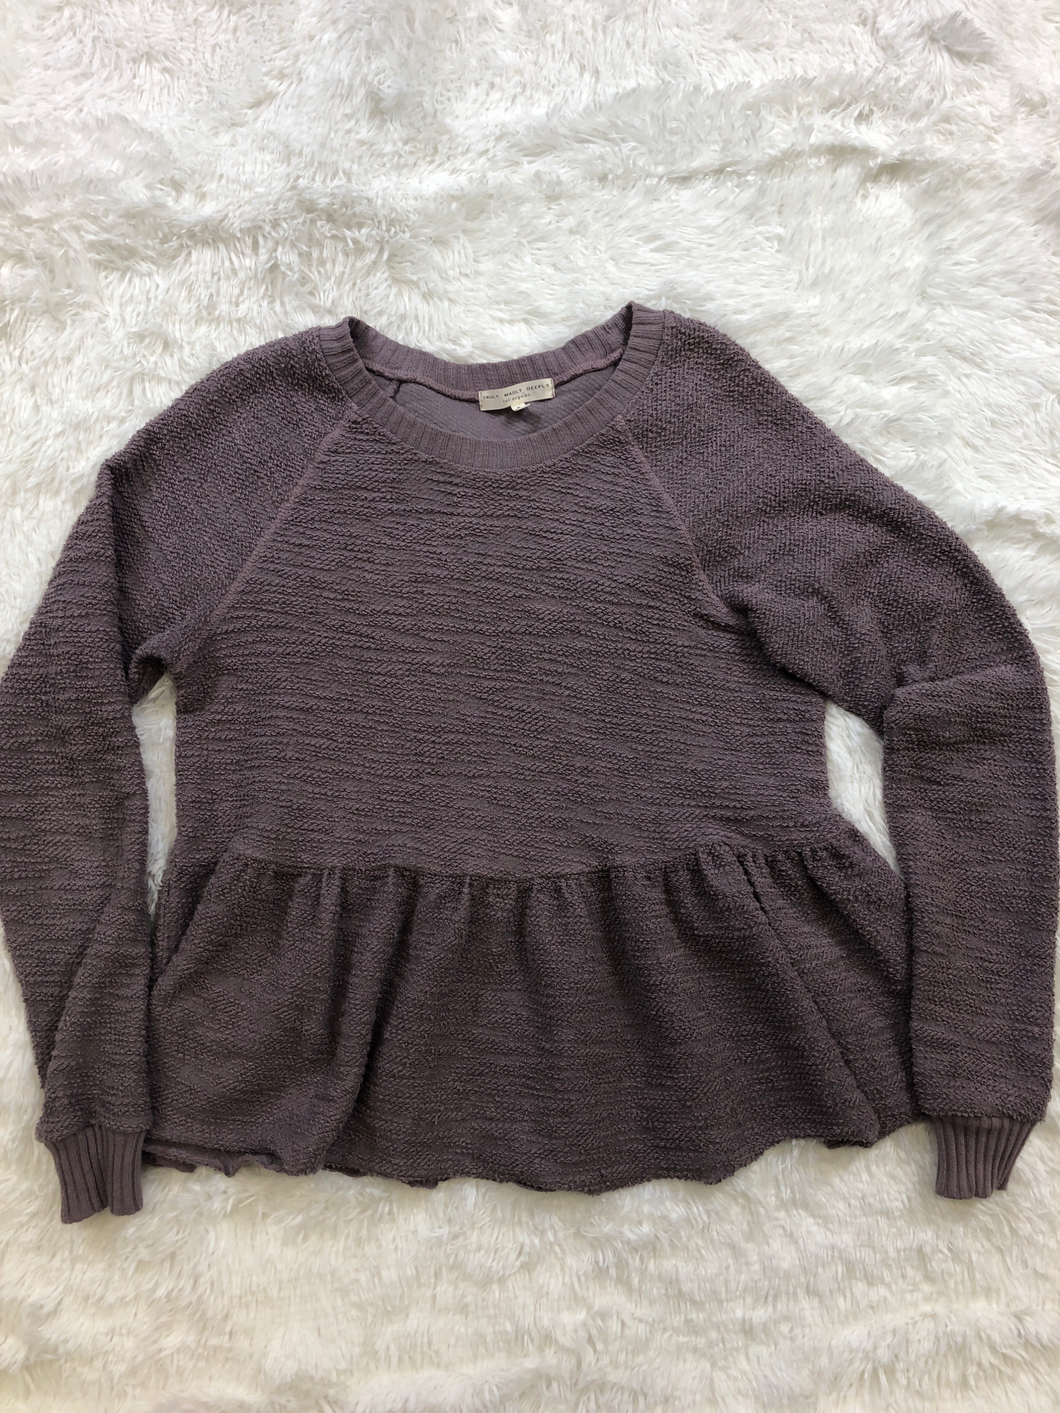 Truly Madly Deeply Sweater Size Small